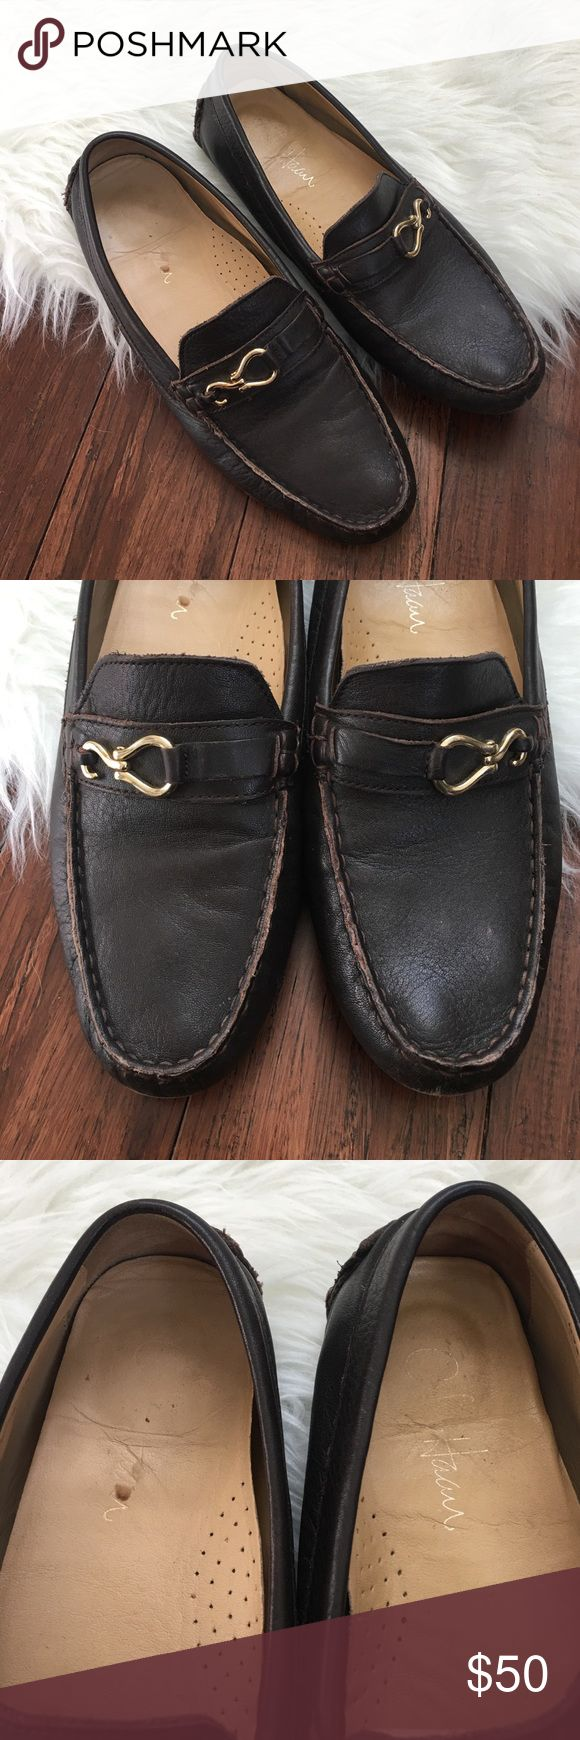 Cole Haan Chocolate Brown Buckled Driver Loafers In great used condition. Some wear as shown in the photos. Please review before purchasing! Leather upper. Nike Air technology in the soles. Extremely comfortable! Cole Haan Shoes Flats & Loafers